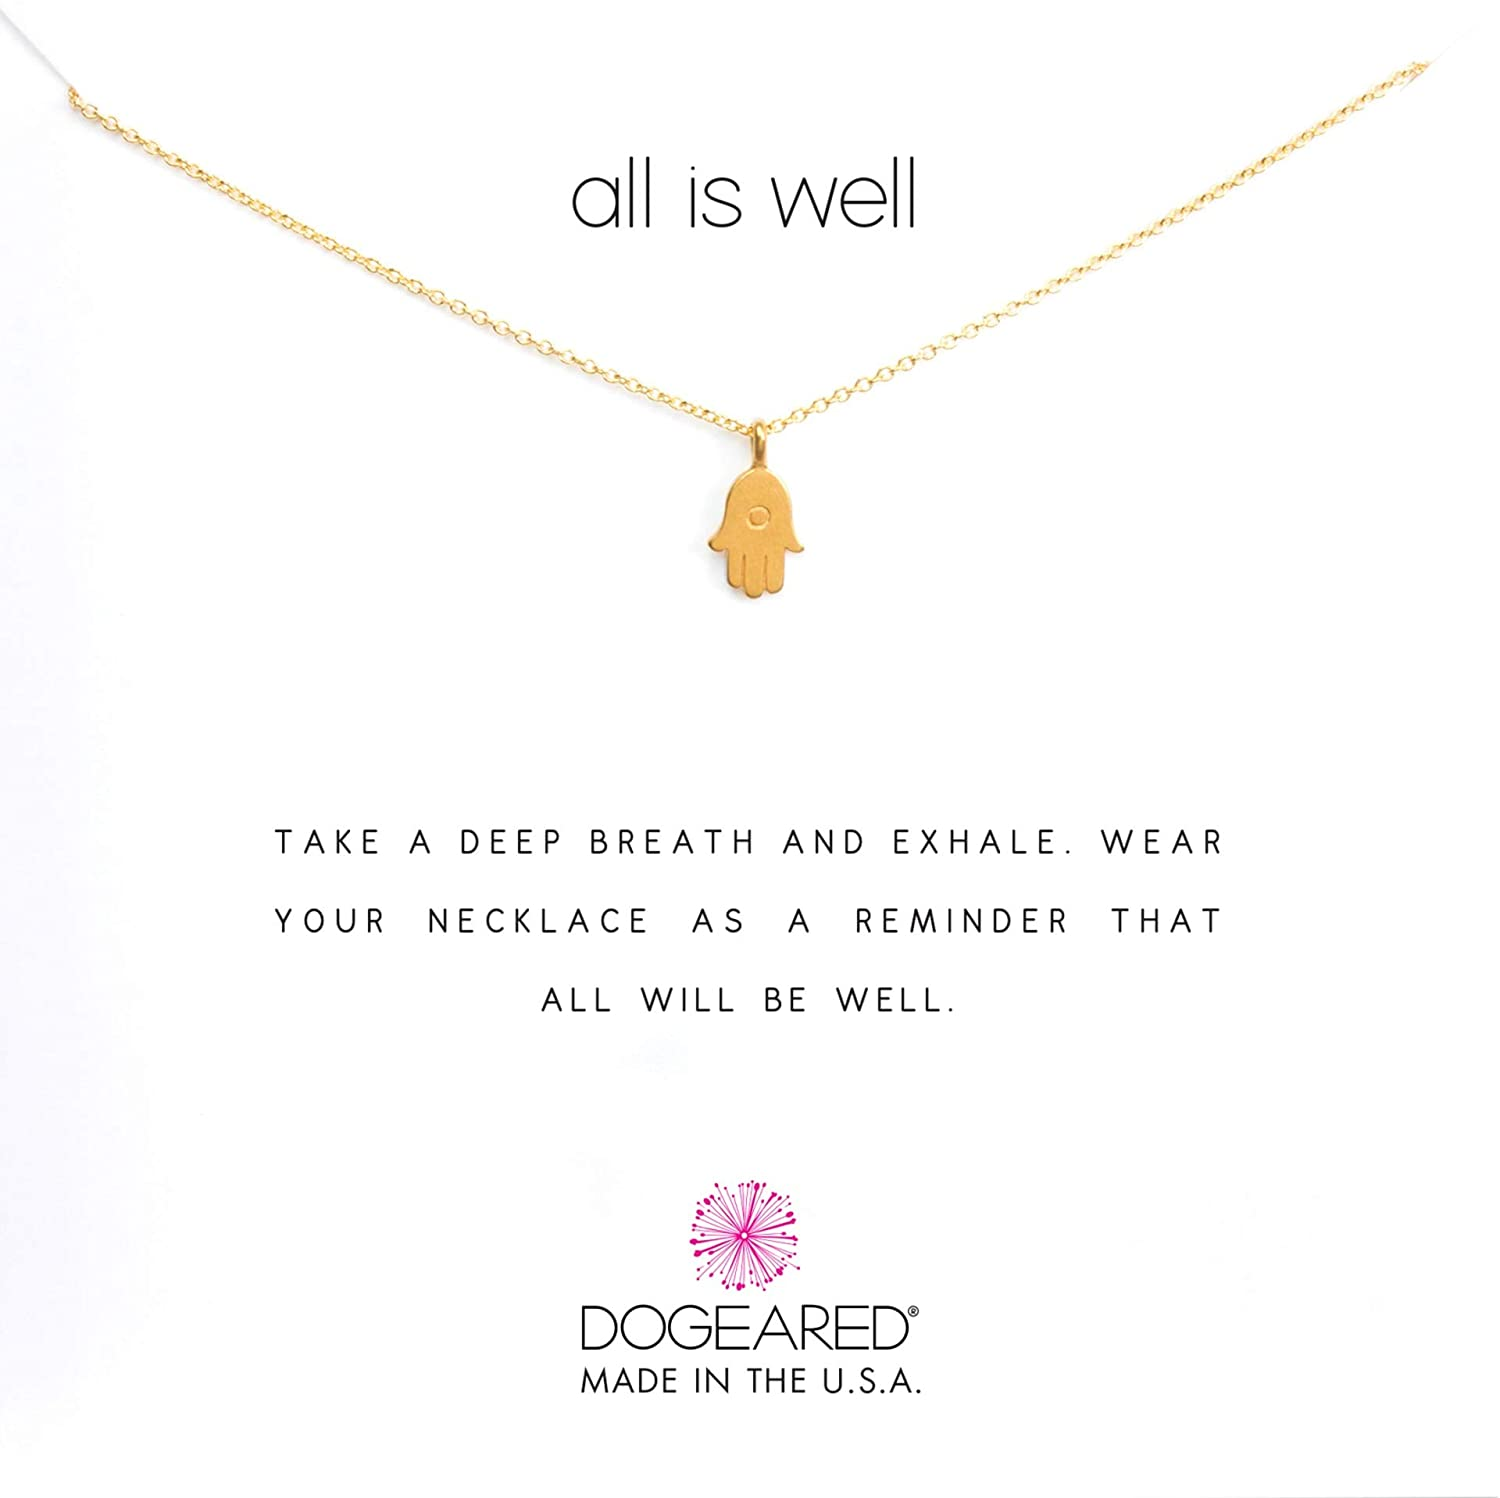 298360e310d159 Amazon.com: Dogeared Women's All is Well Hamsa Reminder Necklace Gold One  Size: Jewelry